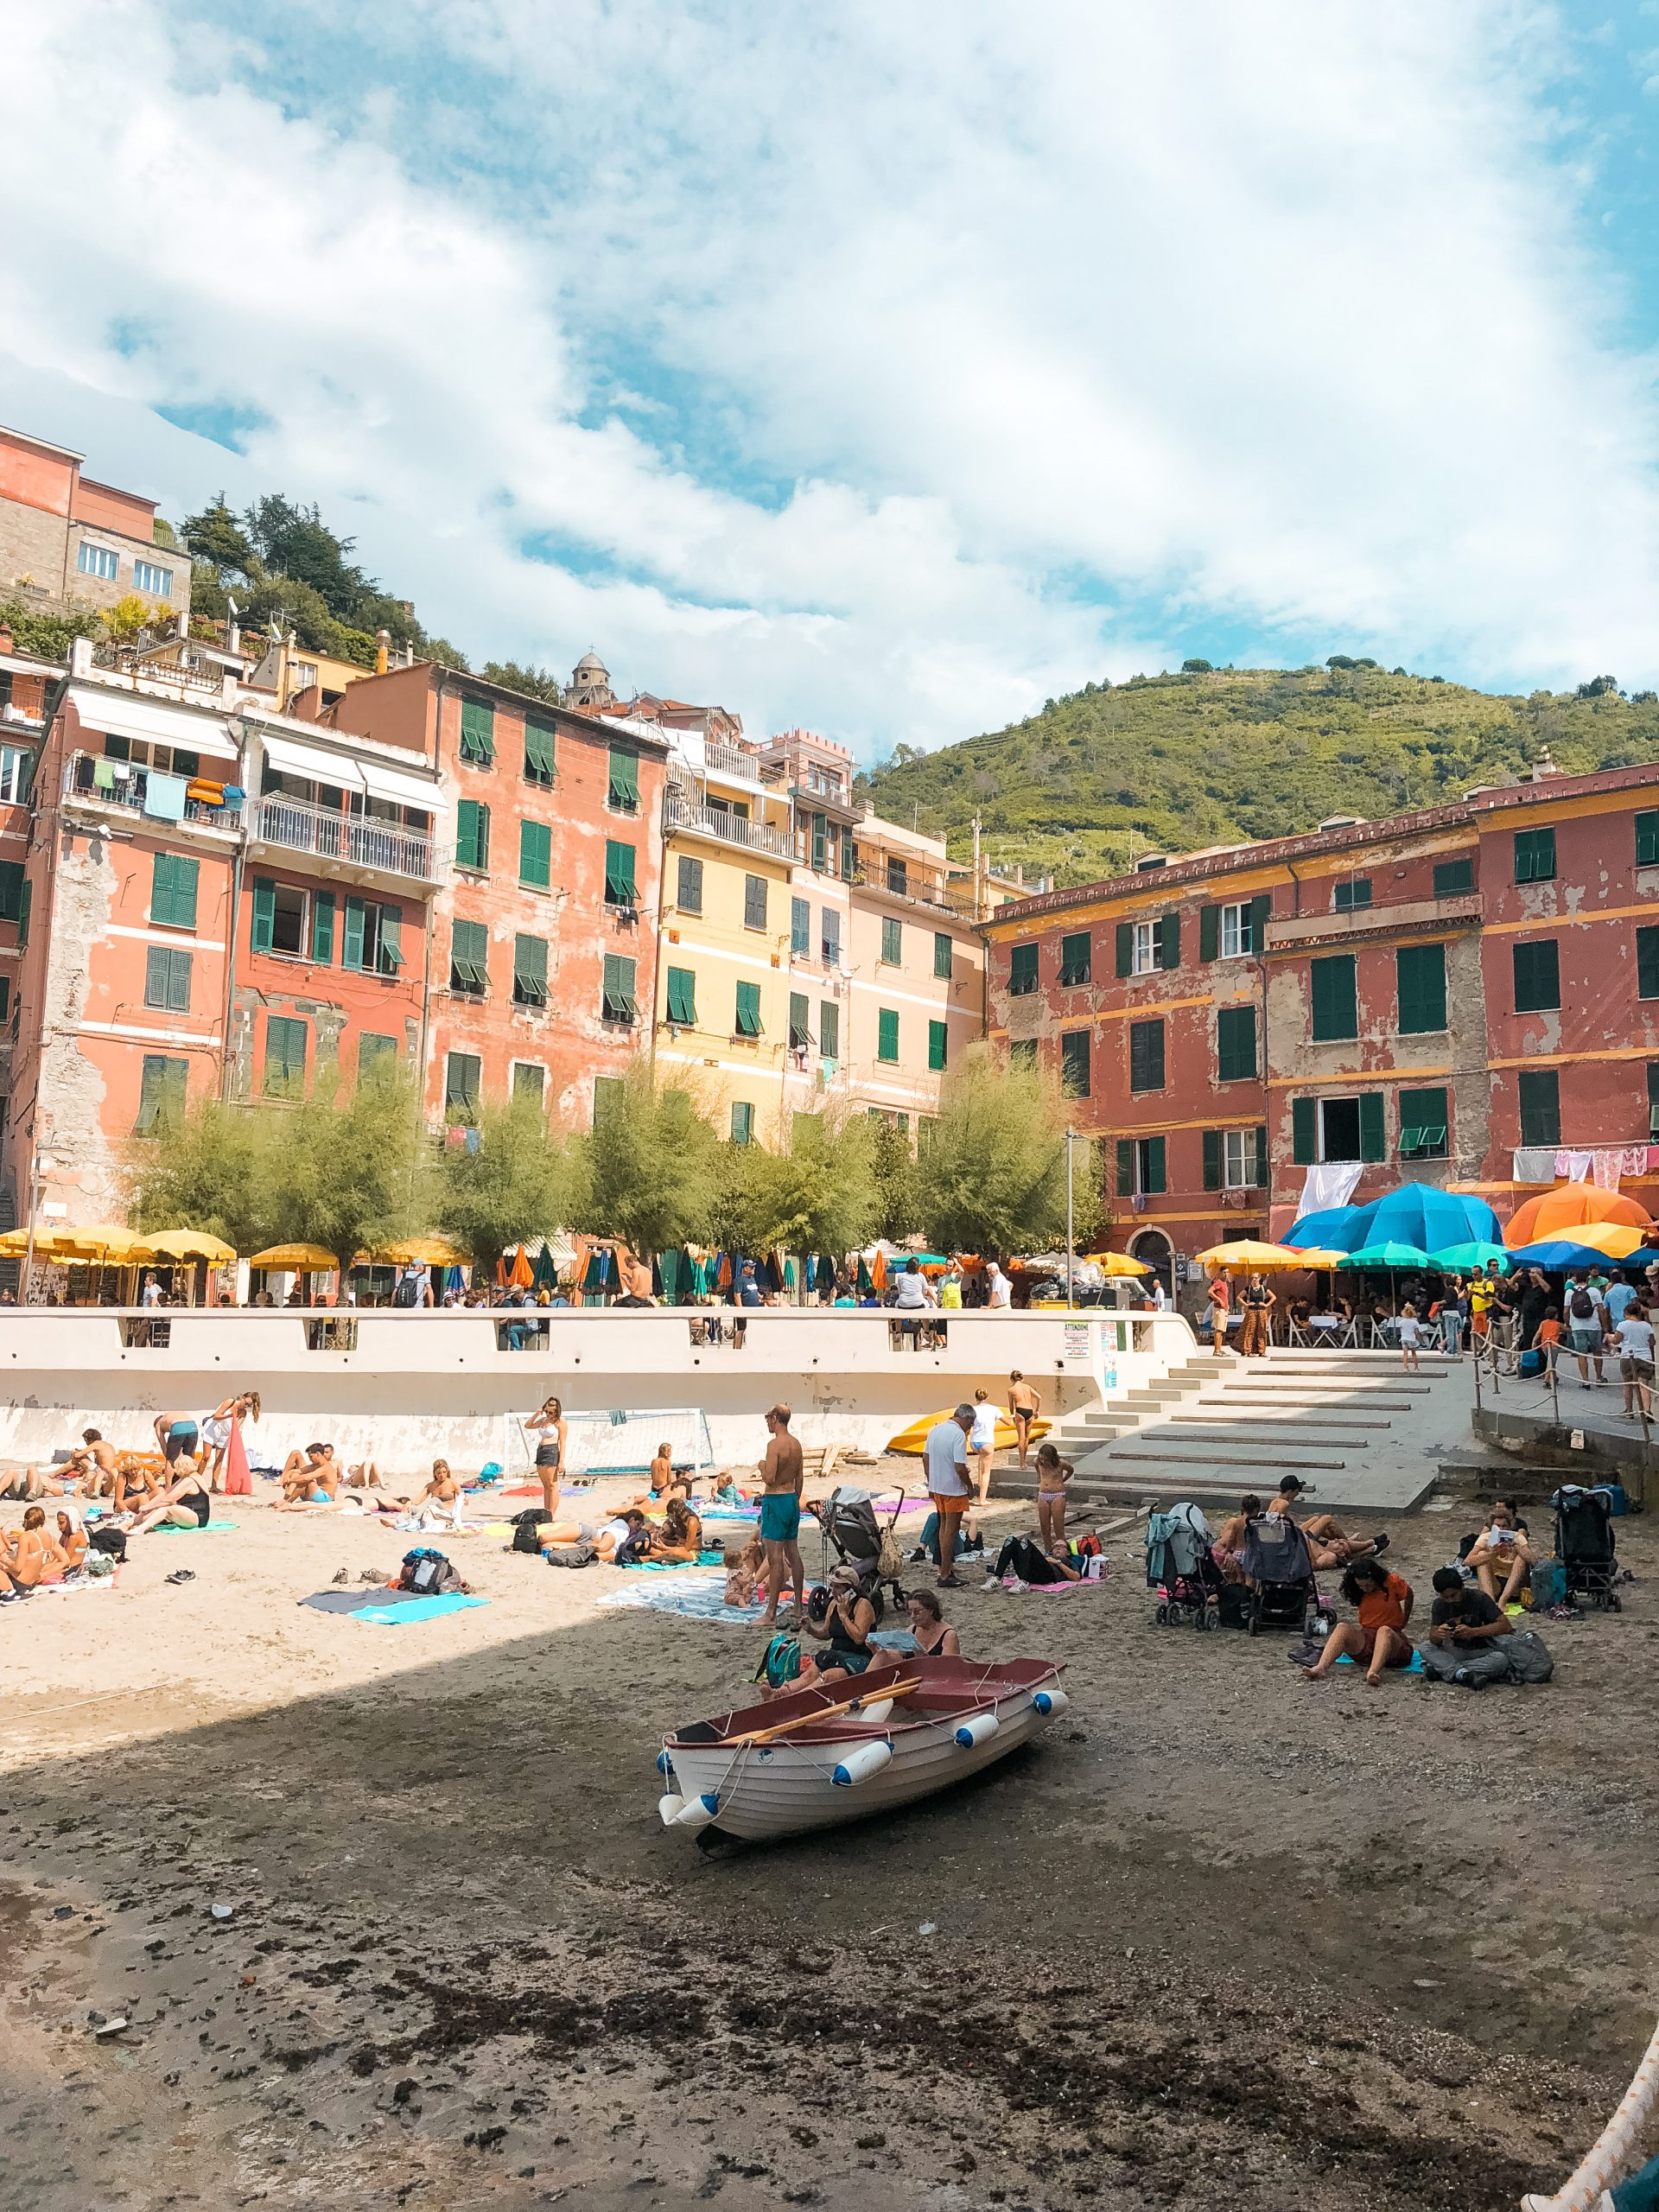 a picture of the colorful buildings on Vernazza